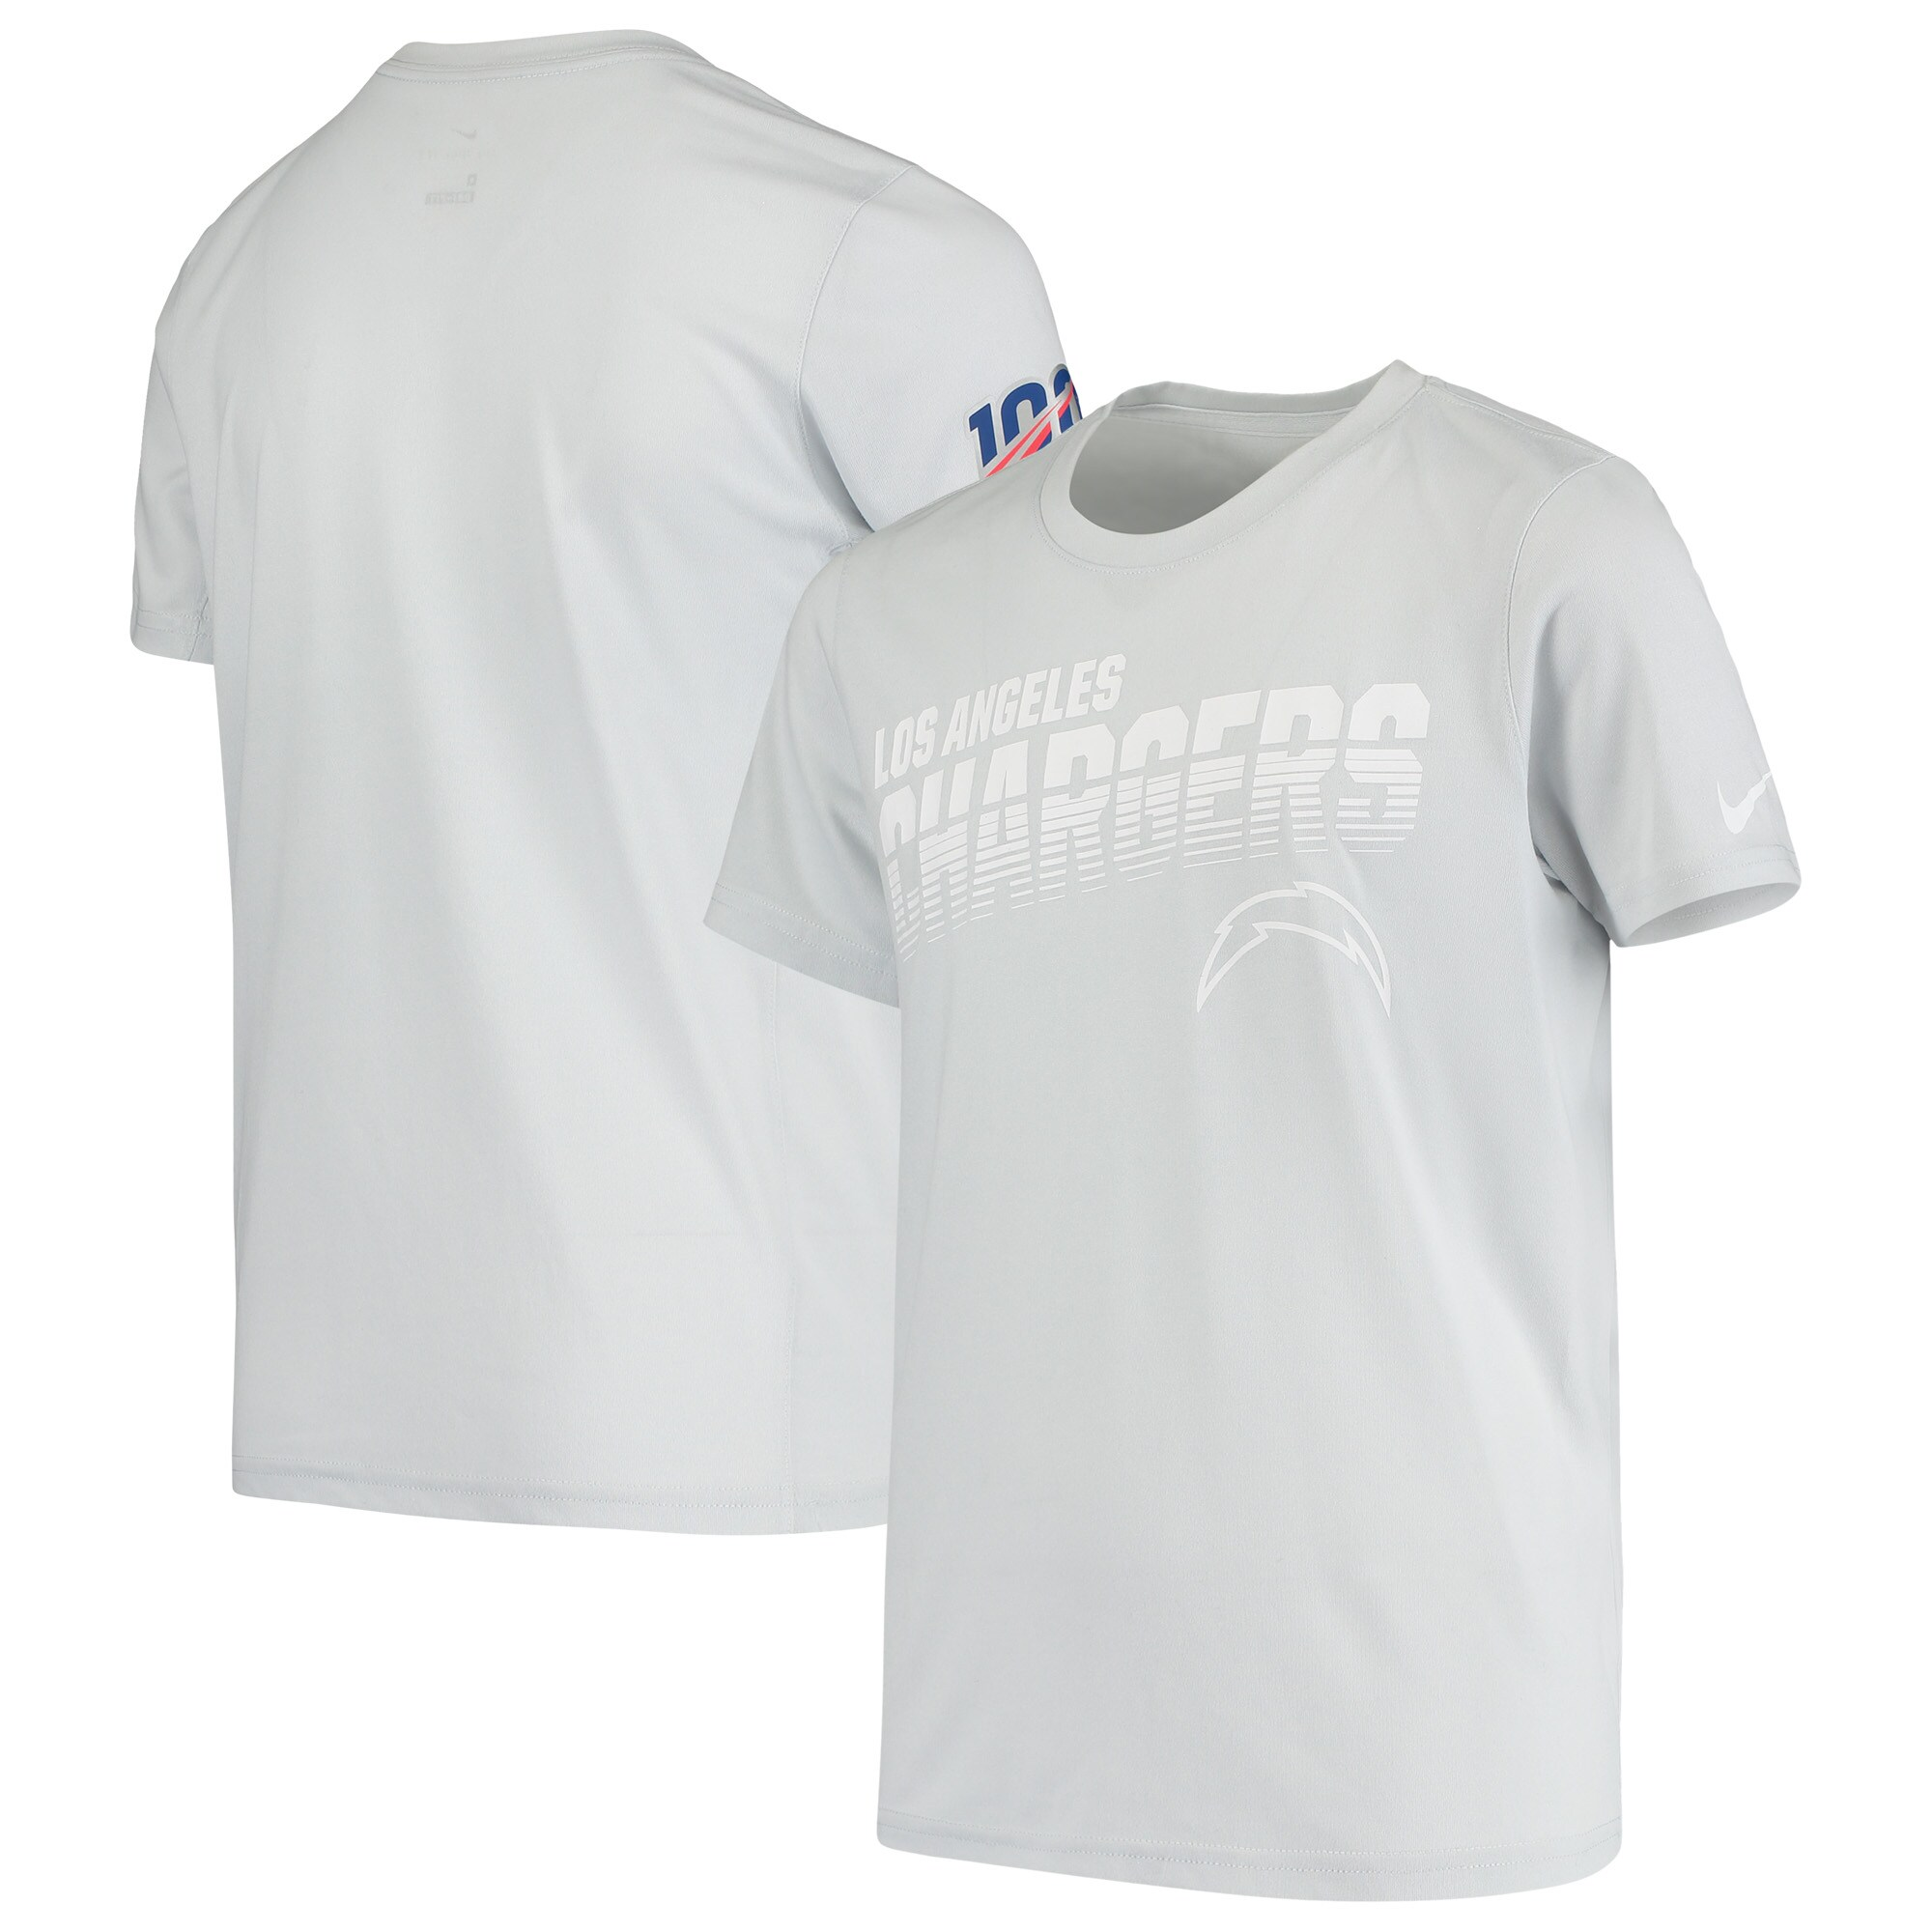 Los Angeles Chargers Nike Youth NFL 100 2019 Sideline Platinum Performance T-Shirt - White